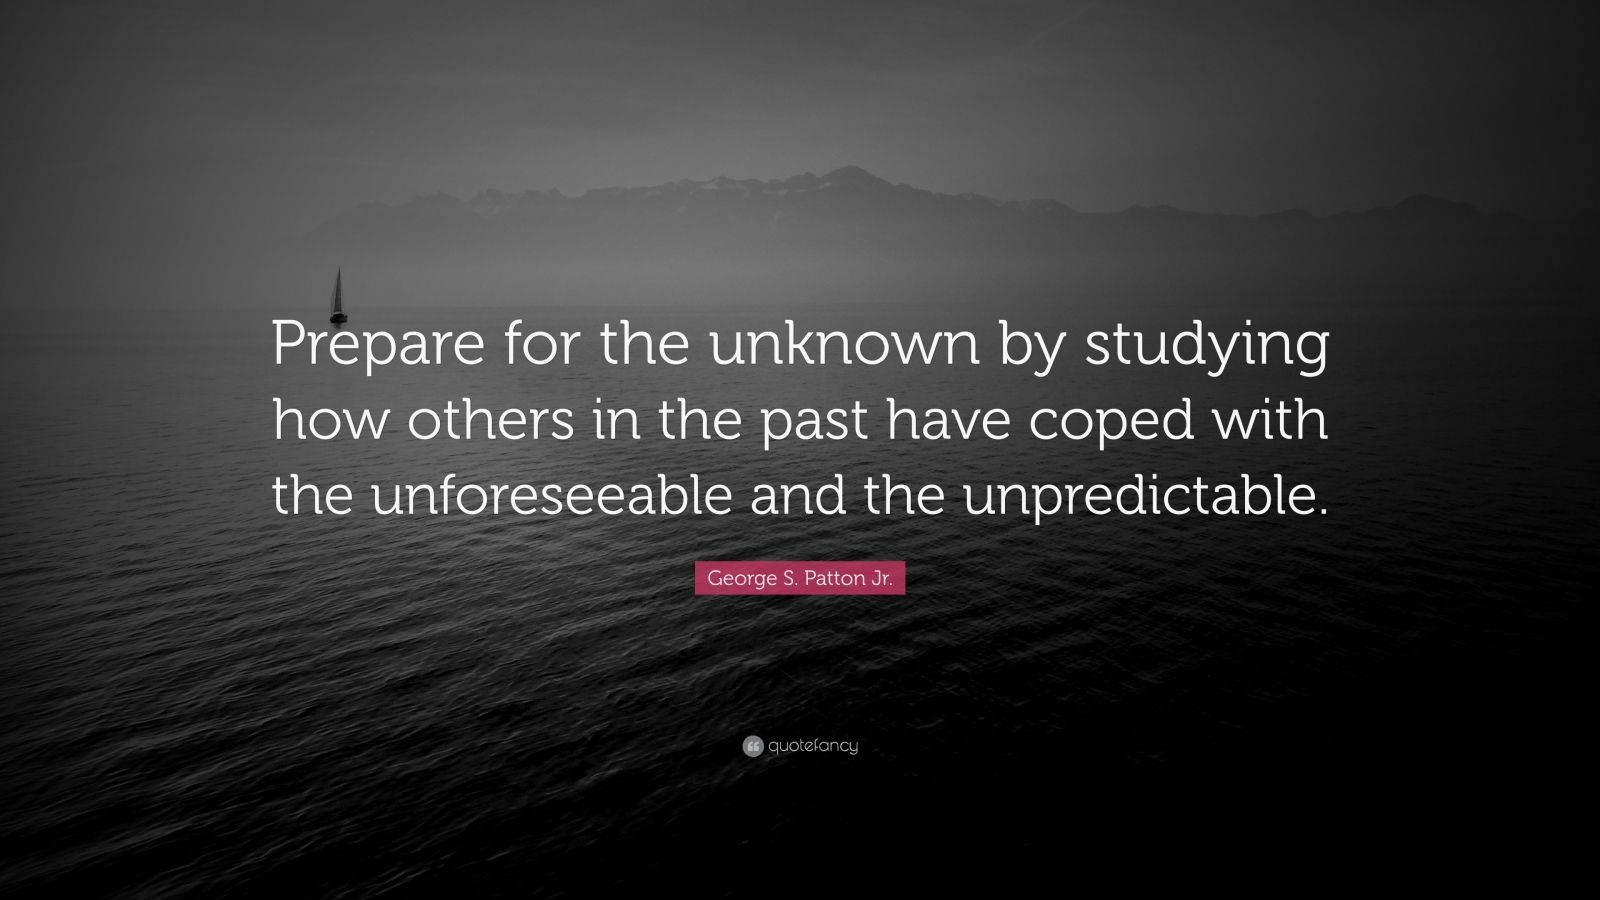 """George S. Patton Jr. Quote: """"Prepare for the unknown by studying how others in the past have coped with the unforeseeable and the unpredictable."""""""